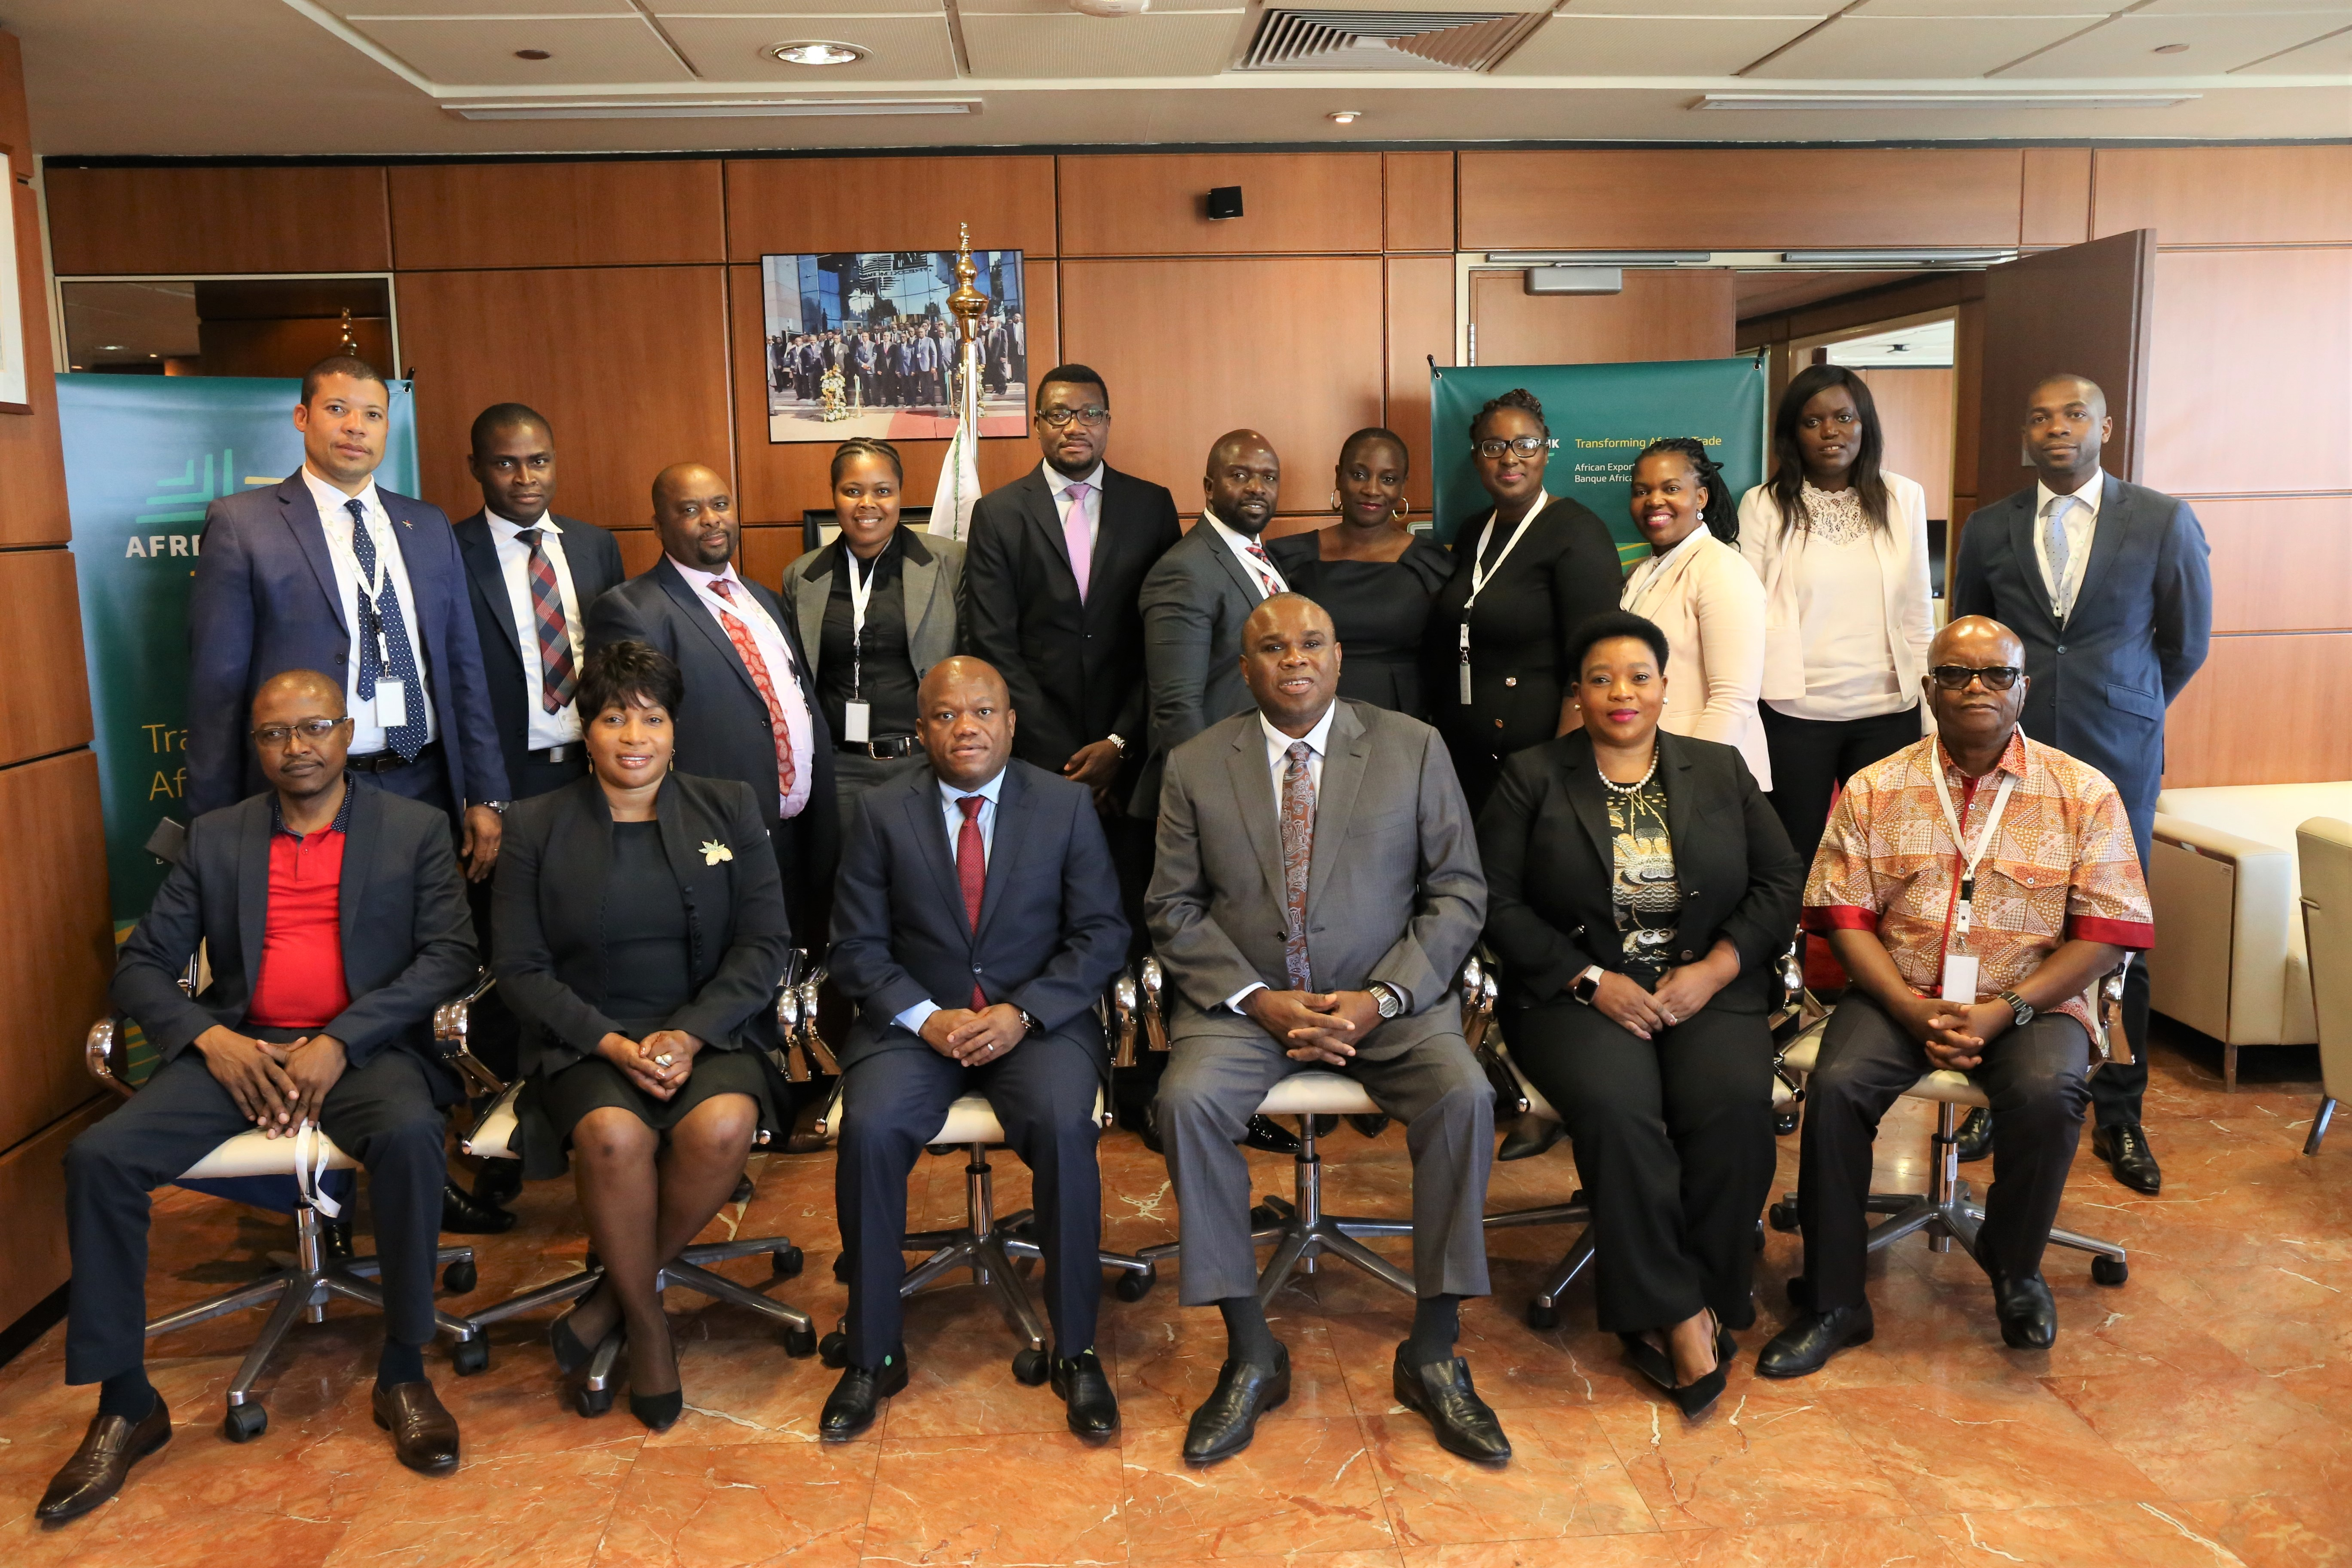 Afreximbank President Prof. Benedict Oramah (3rd right) and Kwazulu-Natal Premier Sihle Zikalala (4th right) in group photo with the Kwazulu-Natal delegation and Afreximbank Staff.